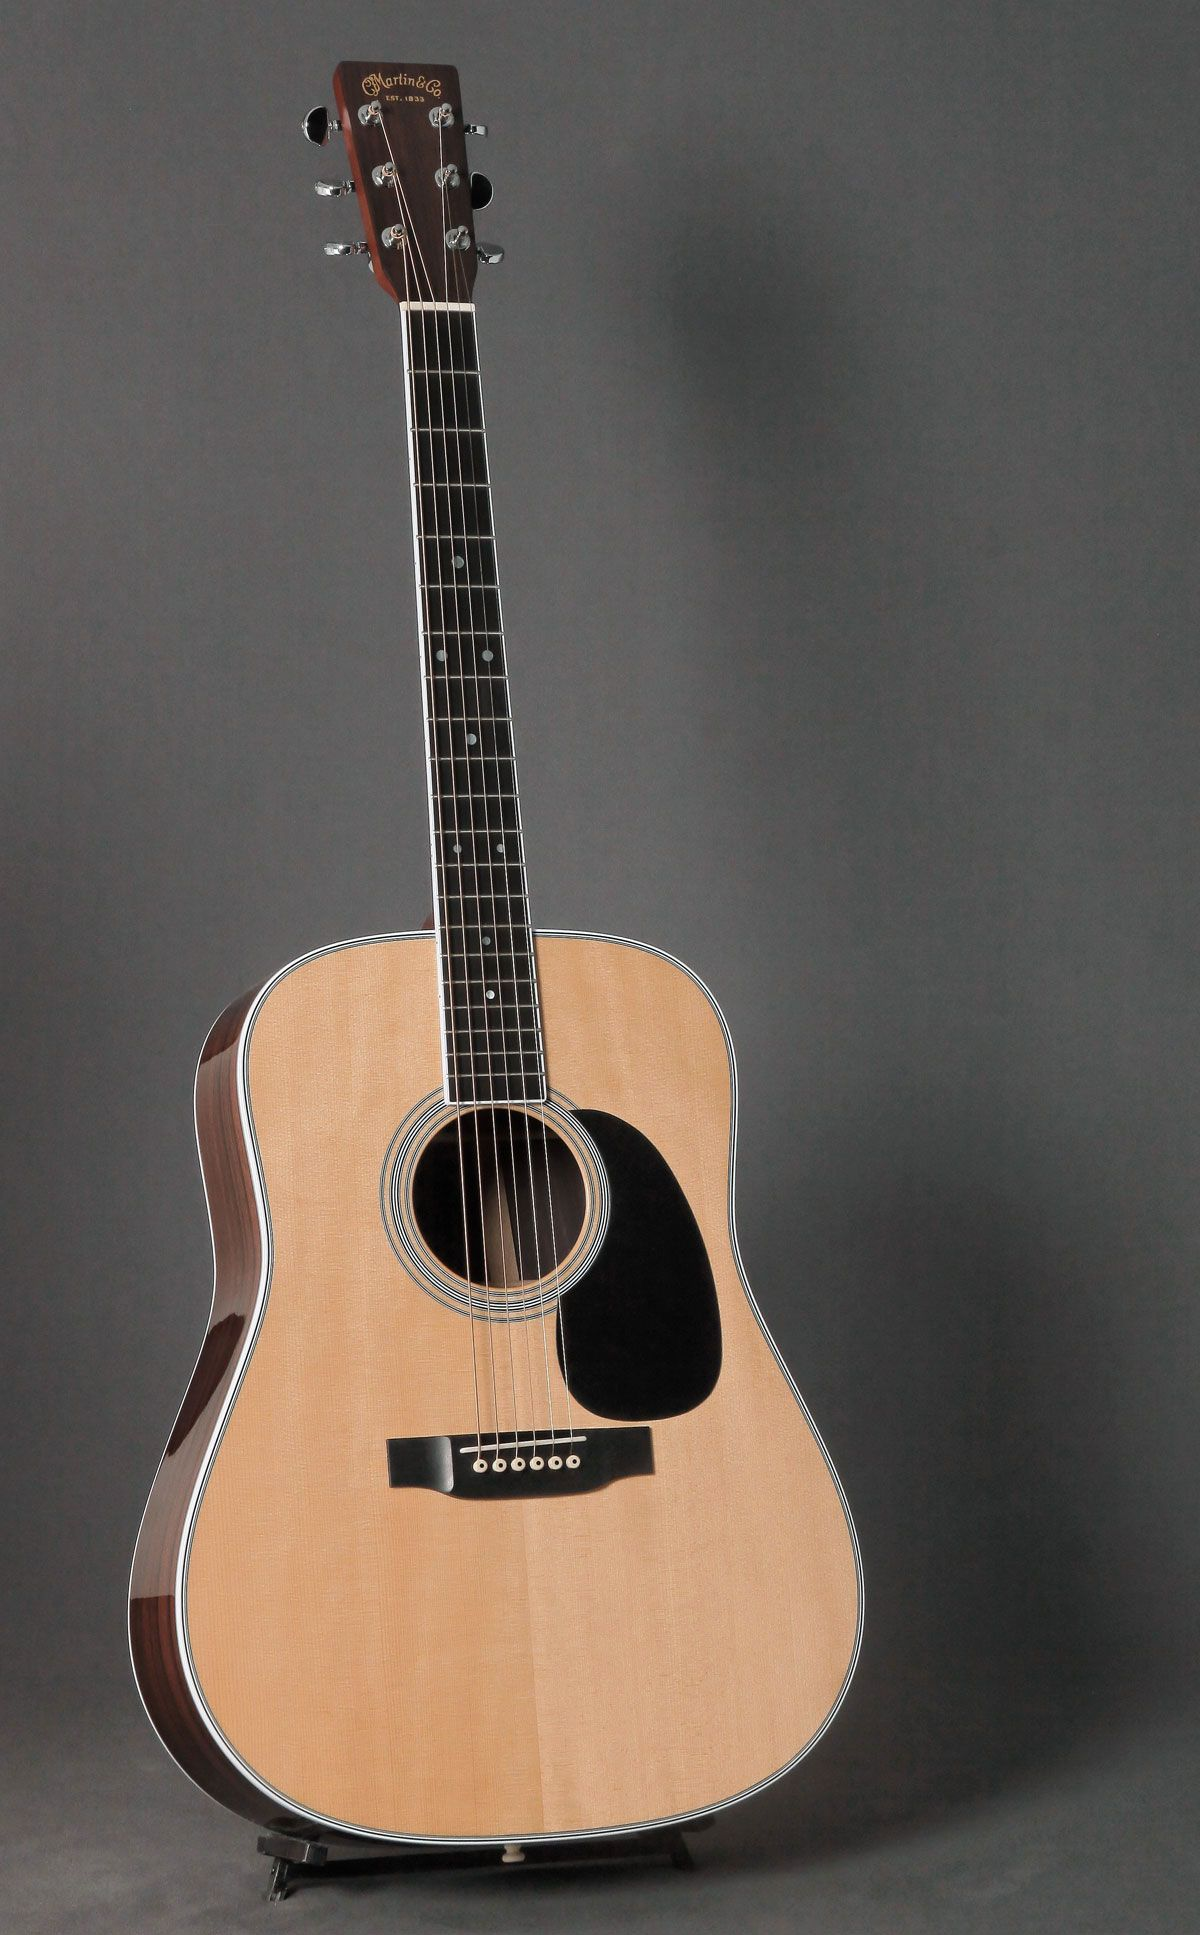 Martin D 35 Guitar Someday The Guitar Fairy Is Going To Leave One Of